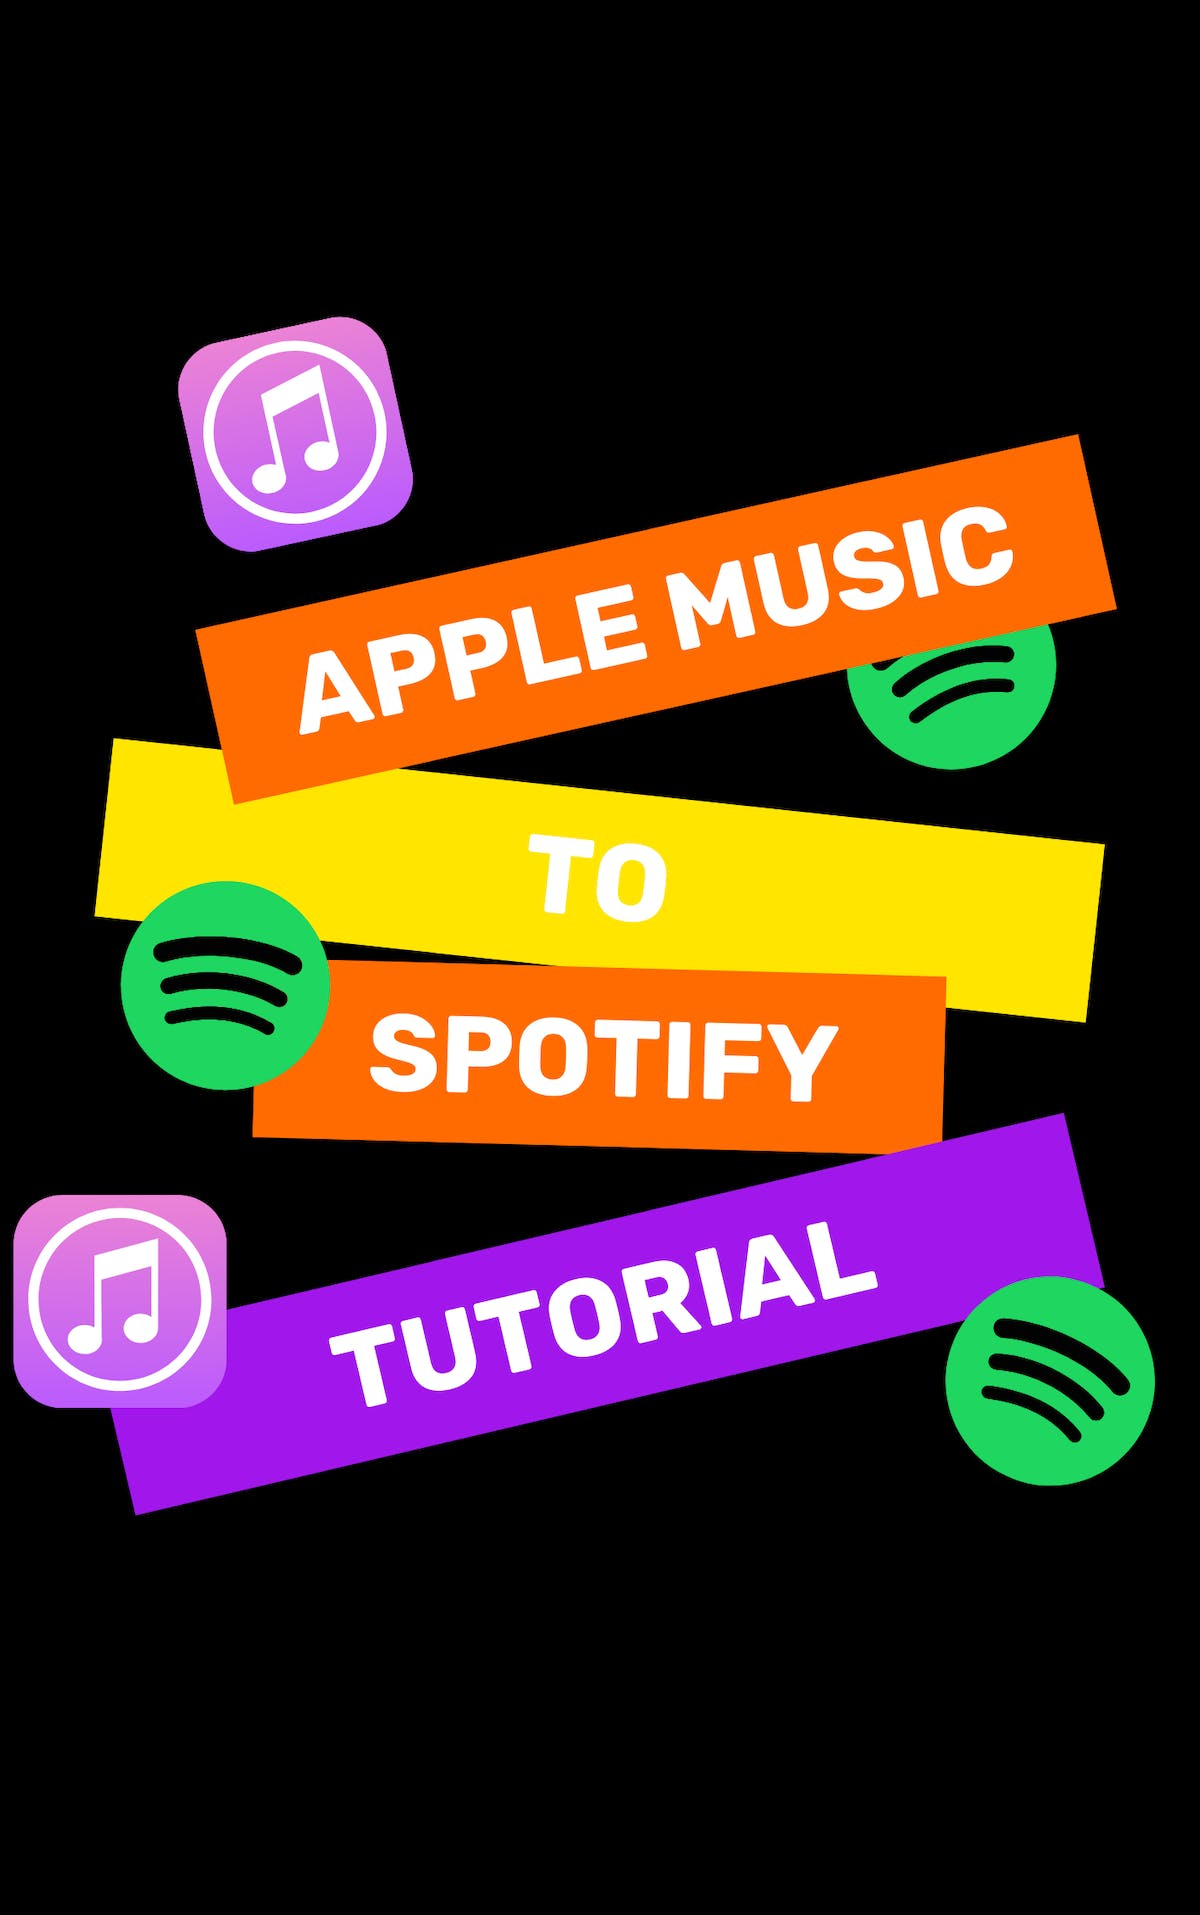 How to Transfer Apple Music to Spotify - A Step-By-Step Tutorial